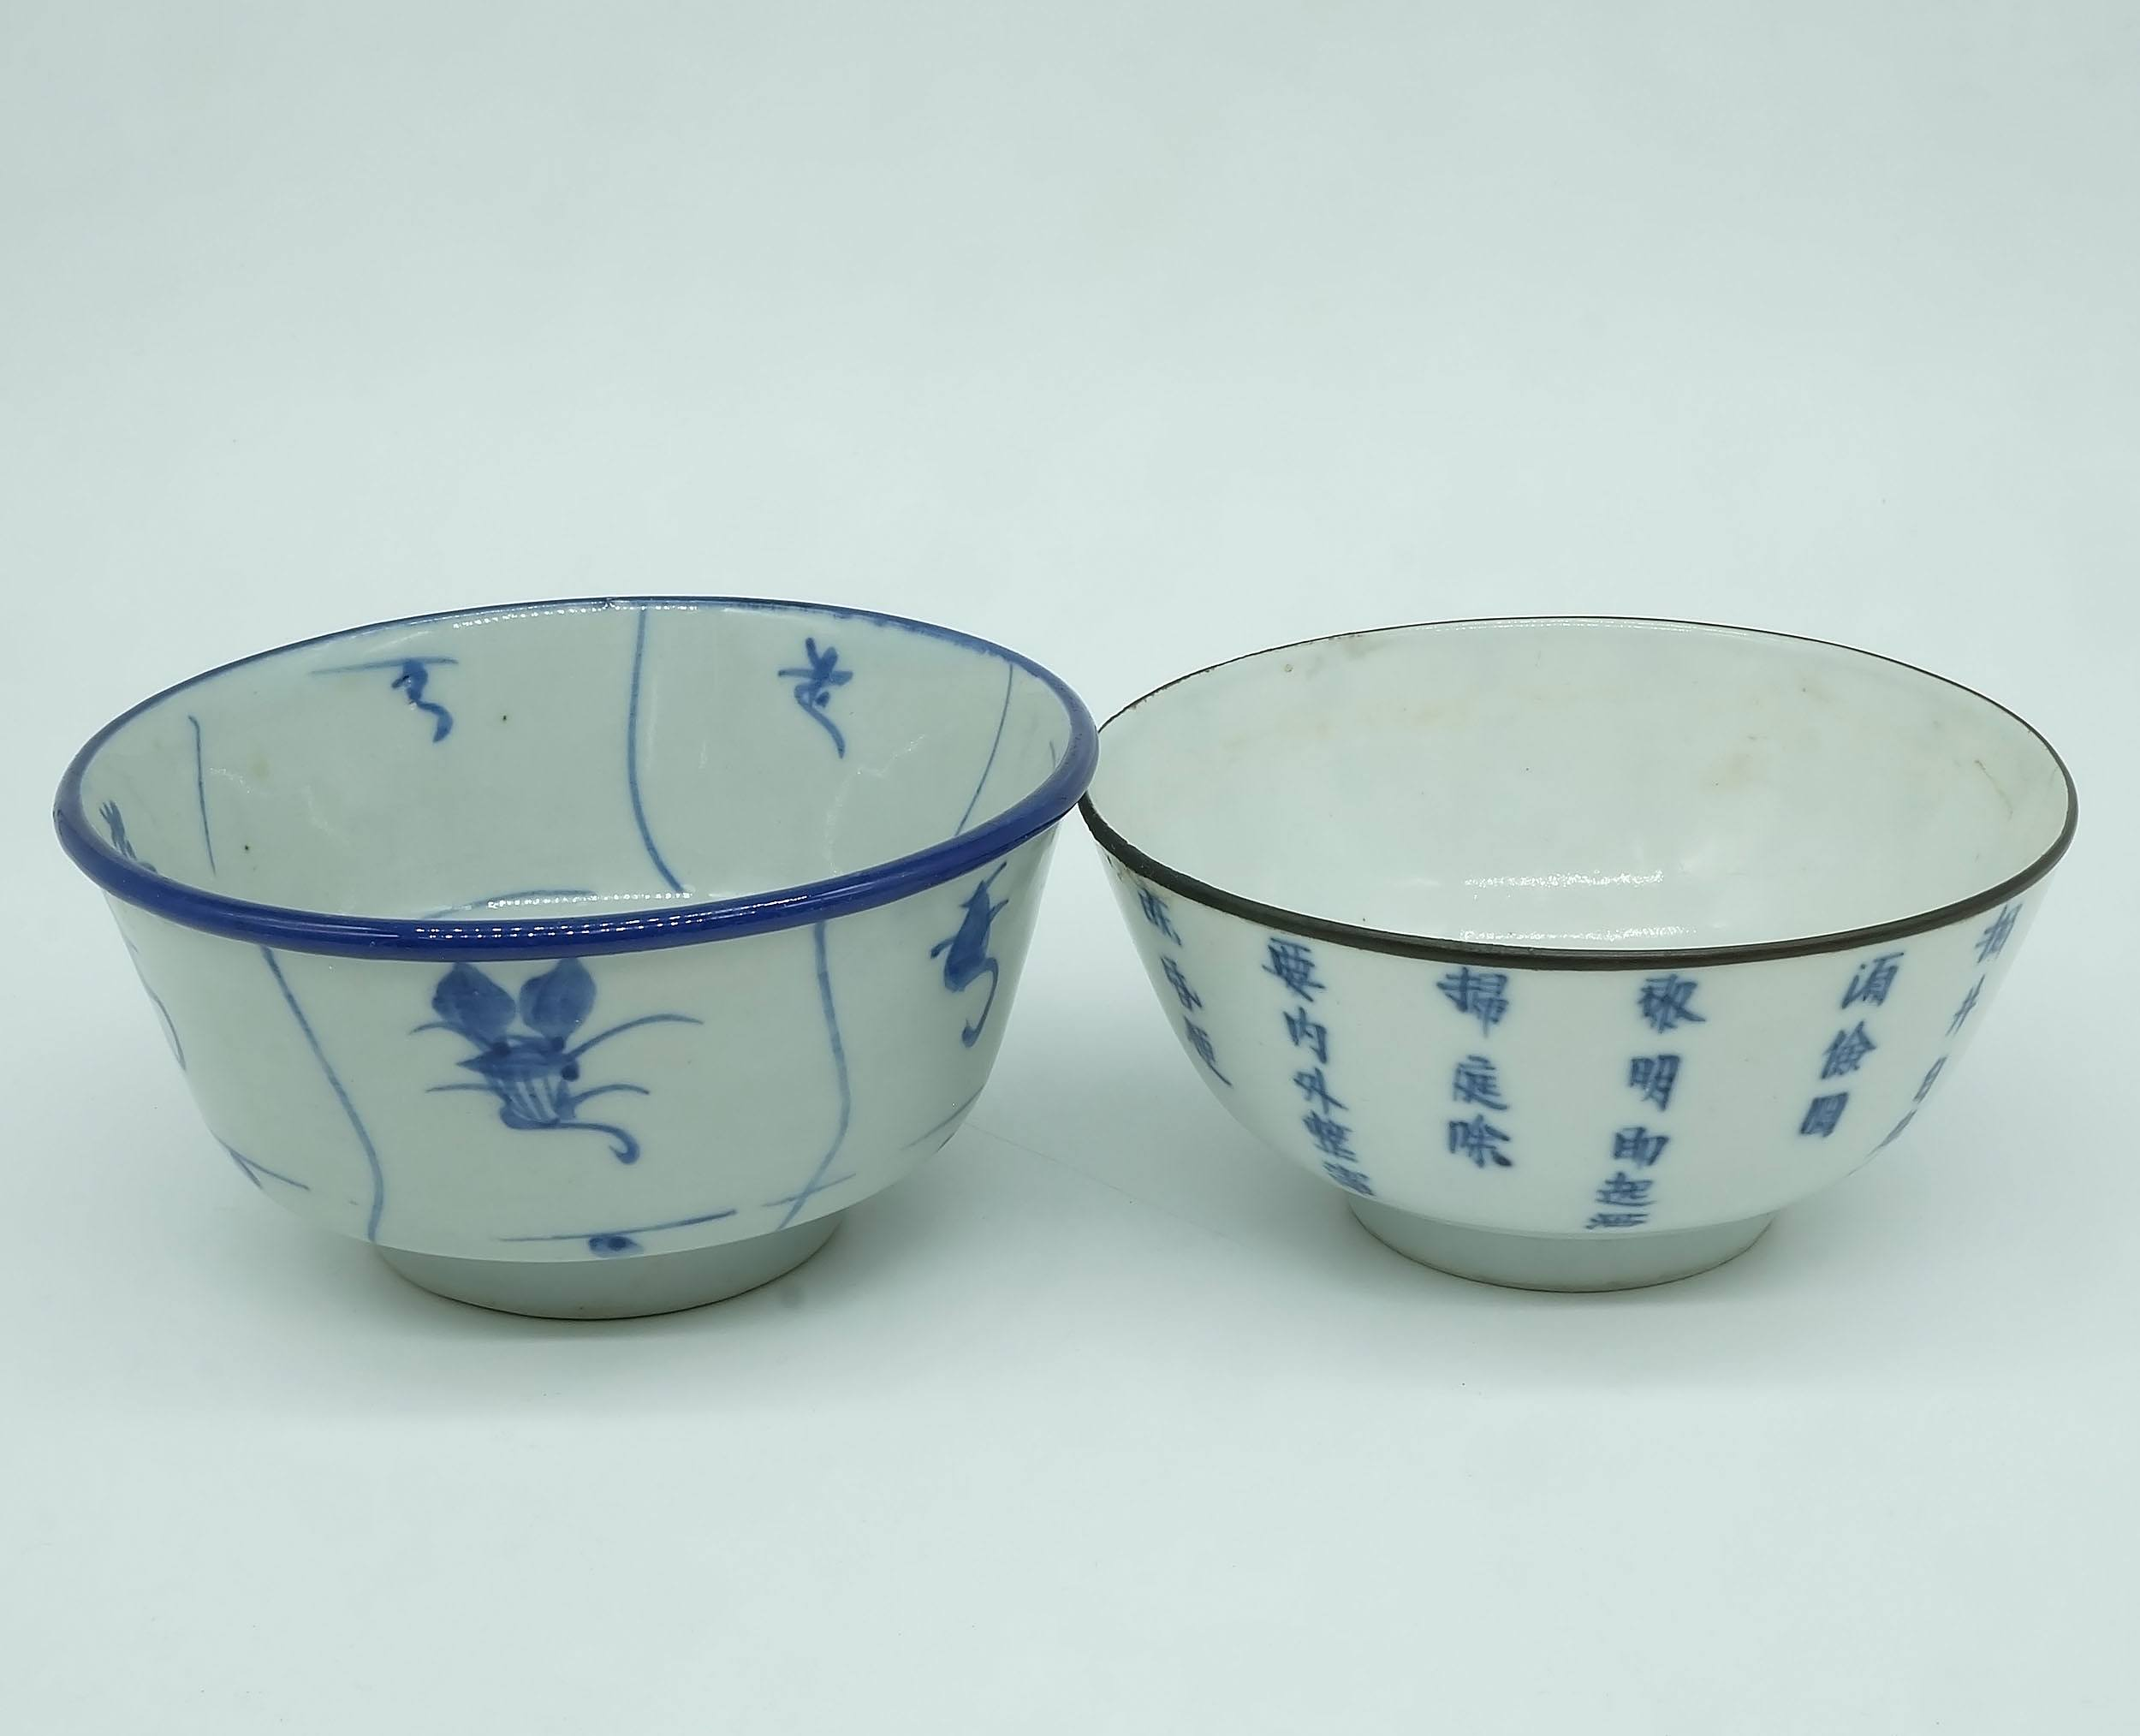 'Chinese Blue & White Calligraphy Bowl with Metal Bound Rim for the Vietnamese Market 19th Century, and Another Bowl'